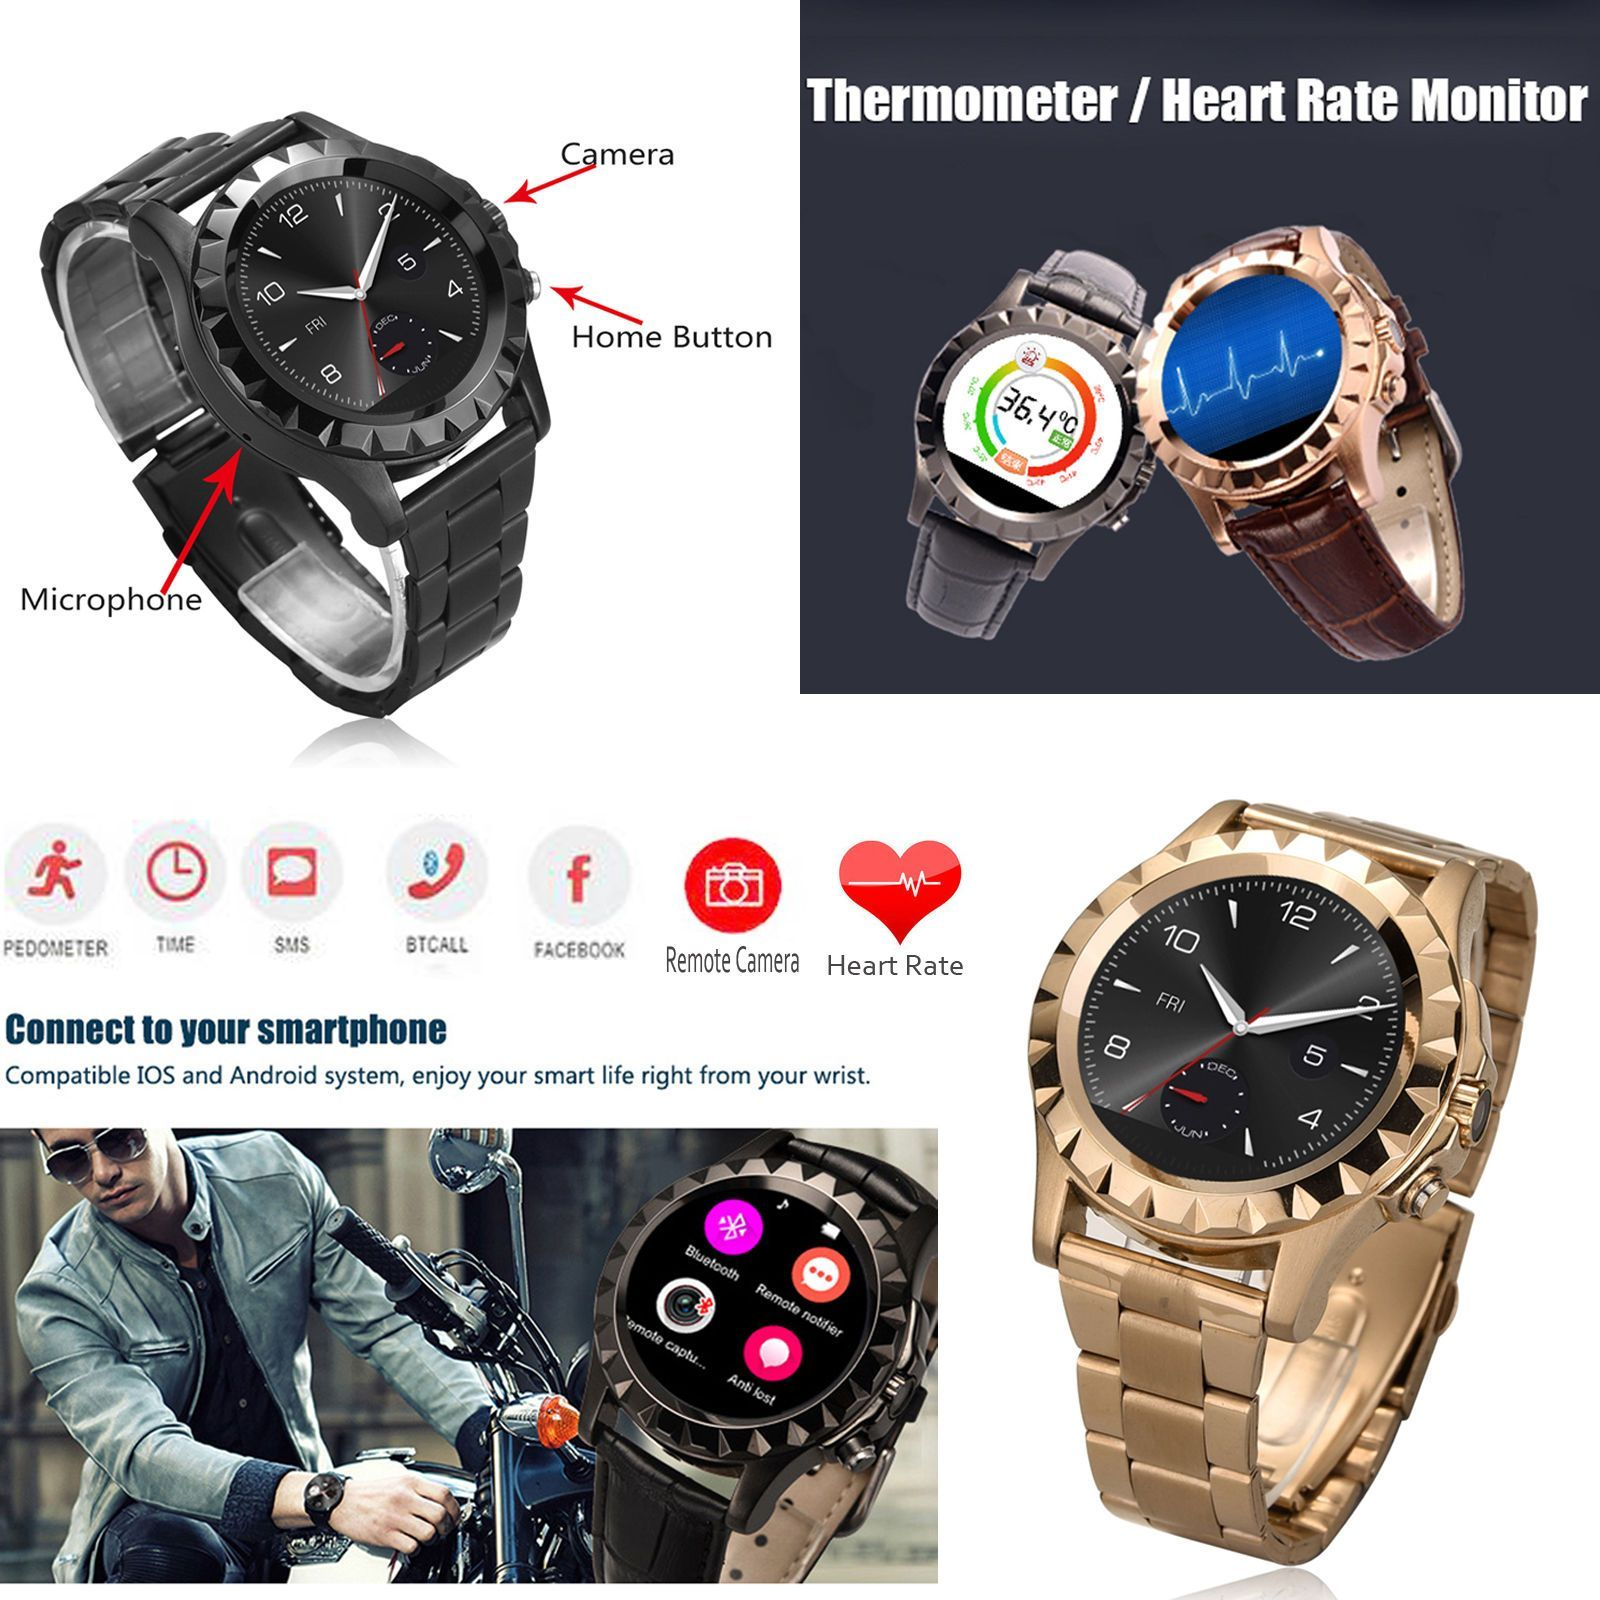 Heart Rate Monitor Bluetooth Smart Watch For Samsung S7 S6 A3 A5 J3 J5 Lg K7